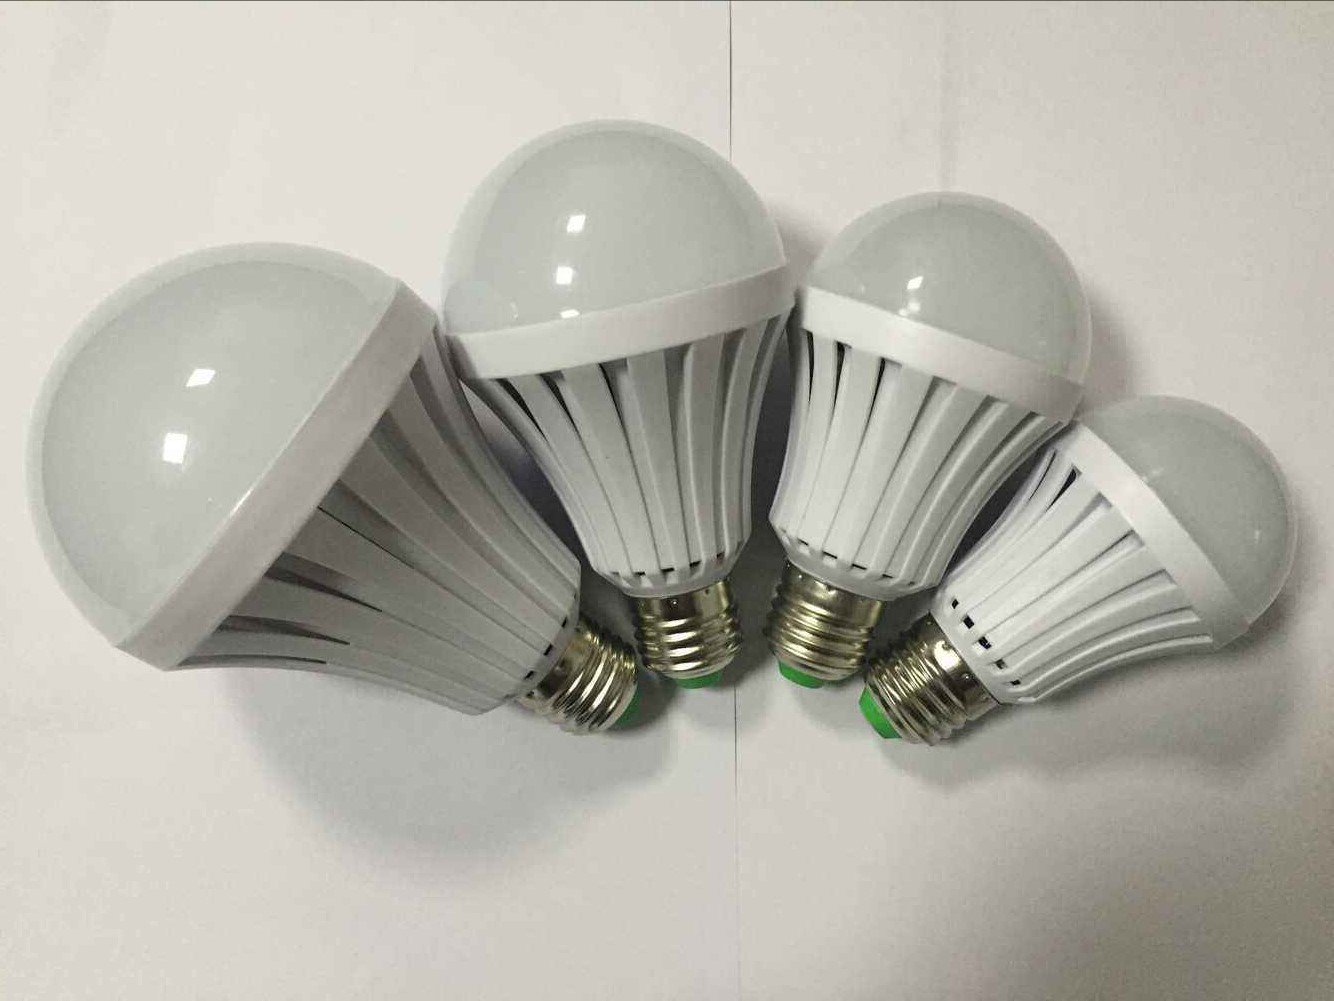 Led Light Manufacturers World